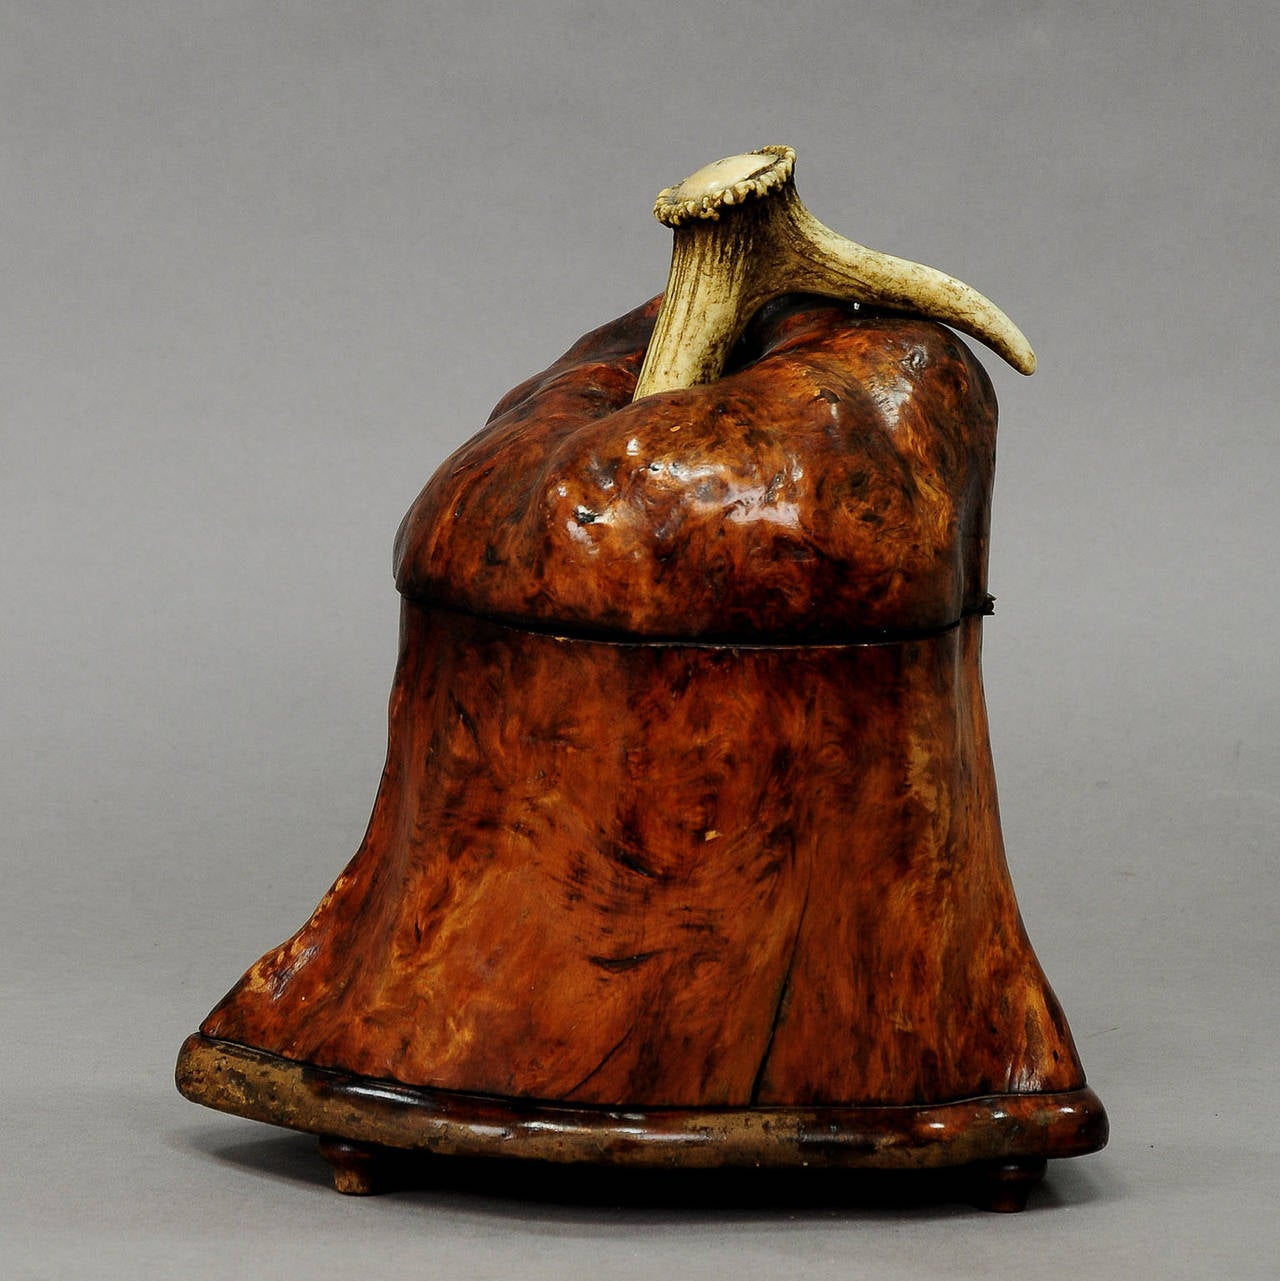 A rare tobacco jar made of a root wood with tin inset and with antler handle, Germany, circa 1910.